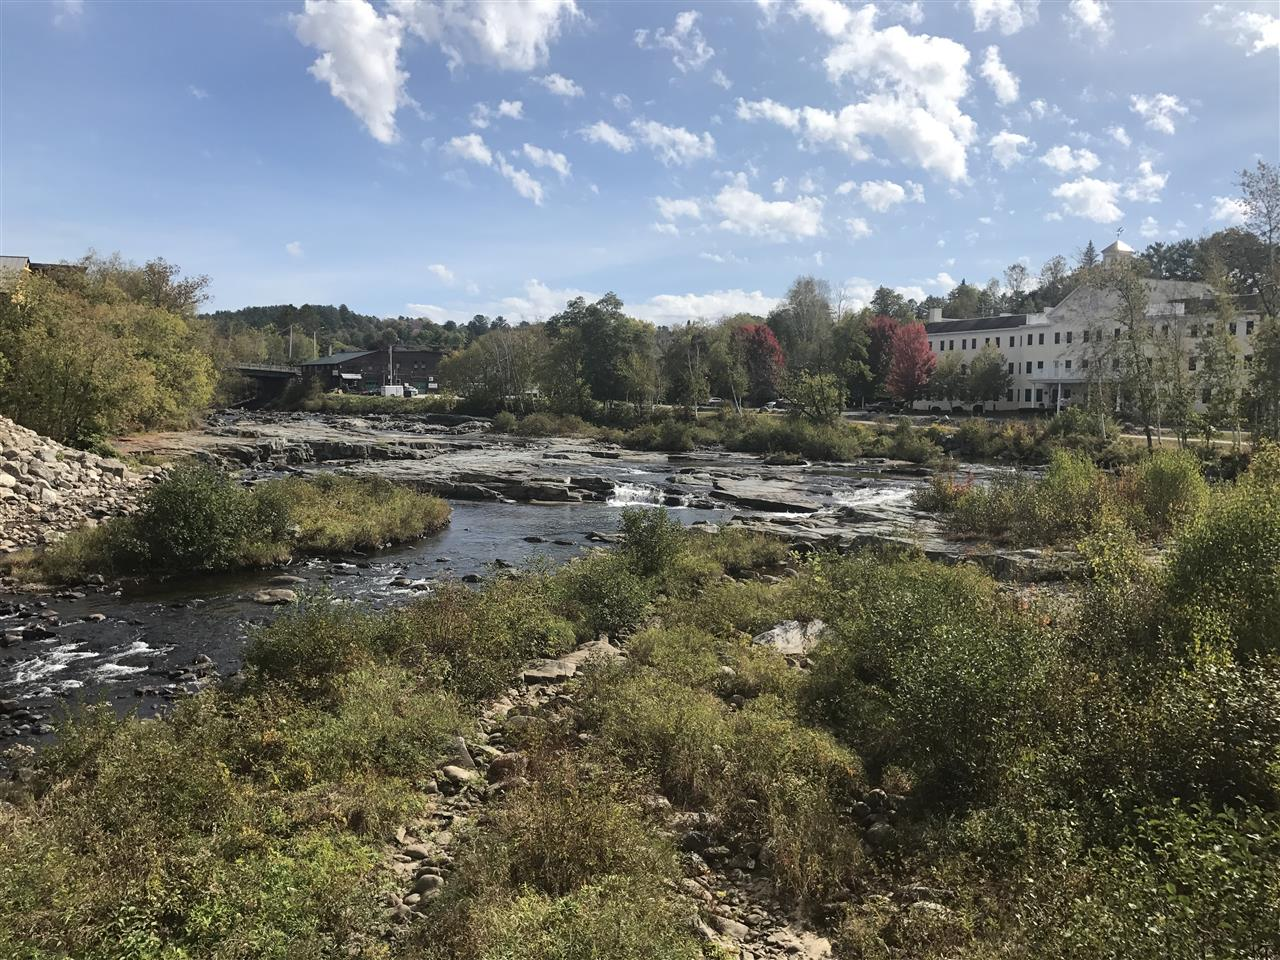 In the summer, these rocks are dotted with people enjoying the water and sun in downtown Littleton, NH.